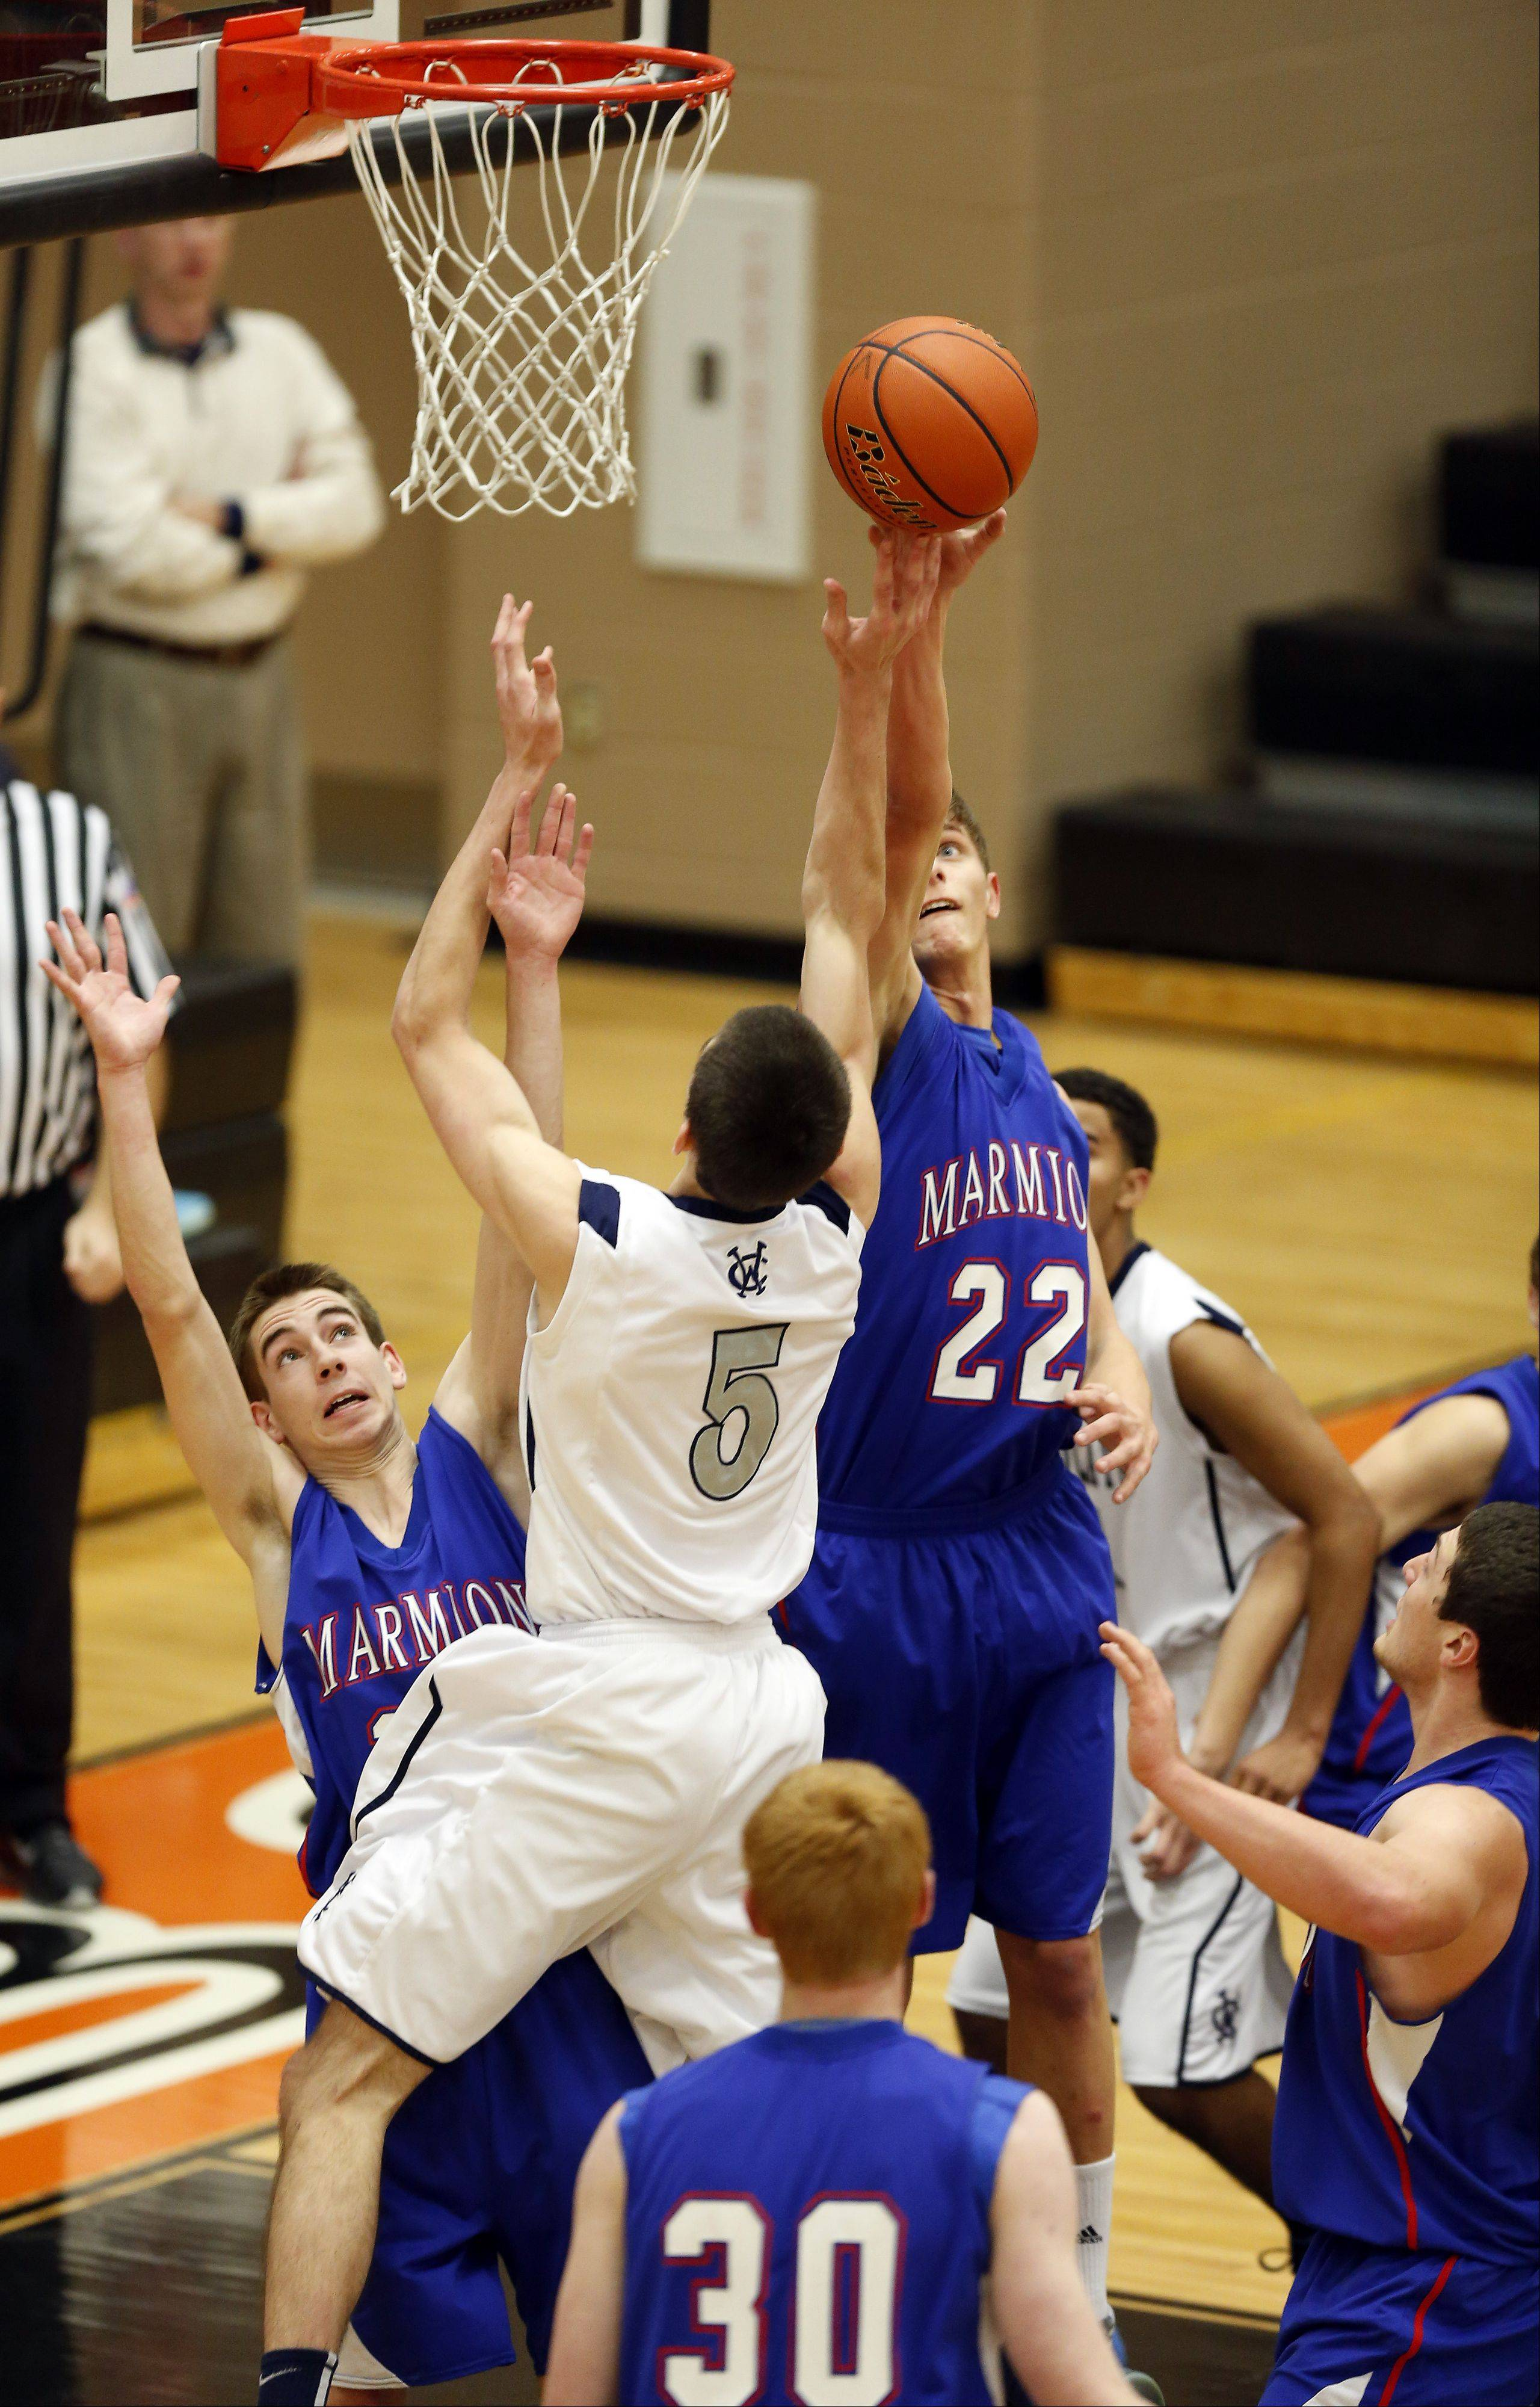 Marmion�s Jake Esp, 22, knocks a shot away from West Chicago�s John Konchar, 5, during the third place game at the 86th Annual Chuck Dayton Holiday Basketball Tournament at Dekalb High School Friday December 27, 2013.